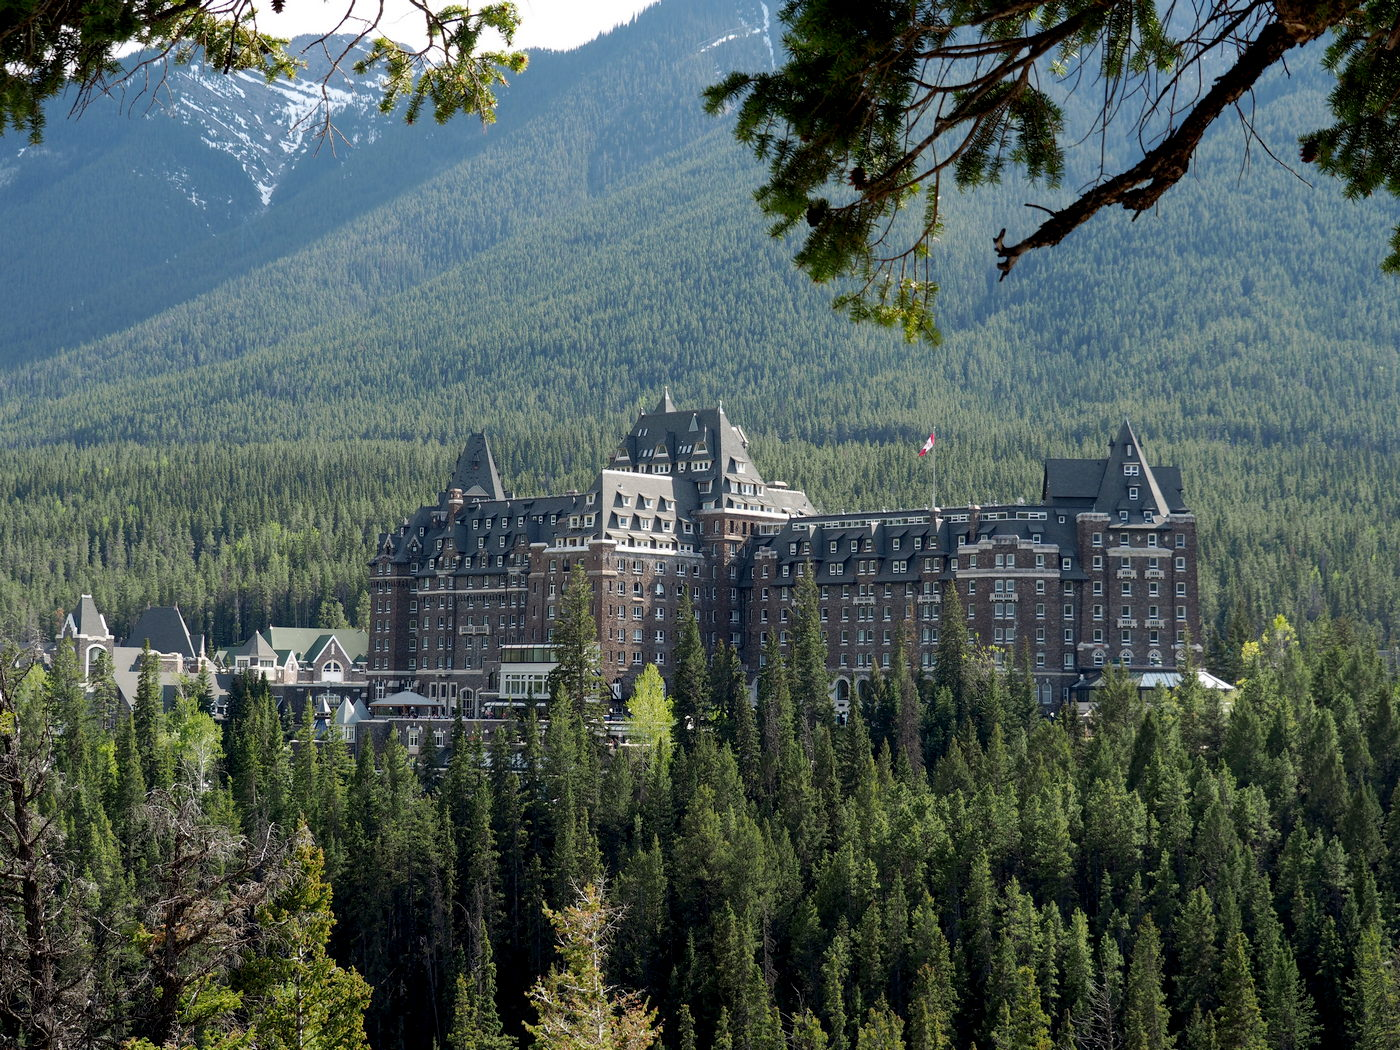 Fairmont Banff Spring Resort